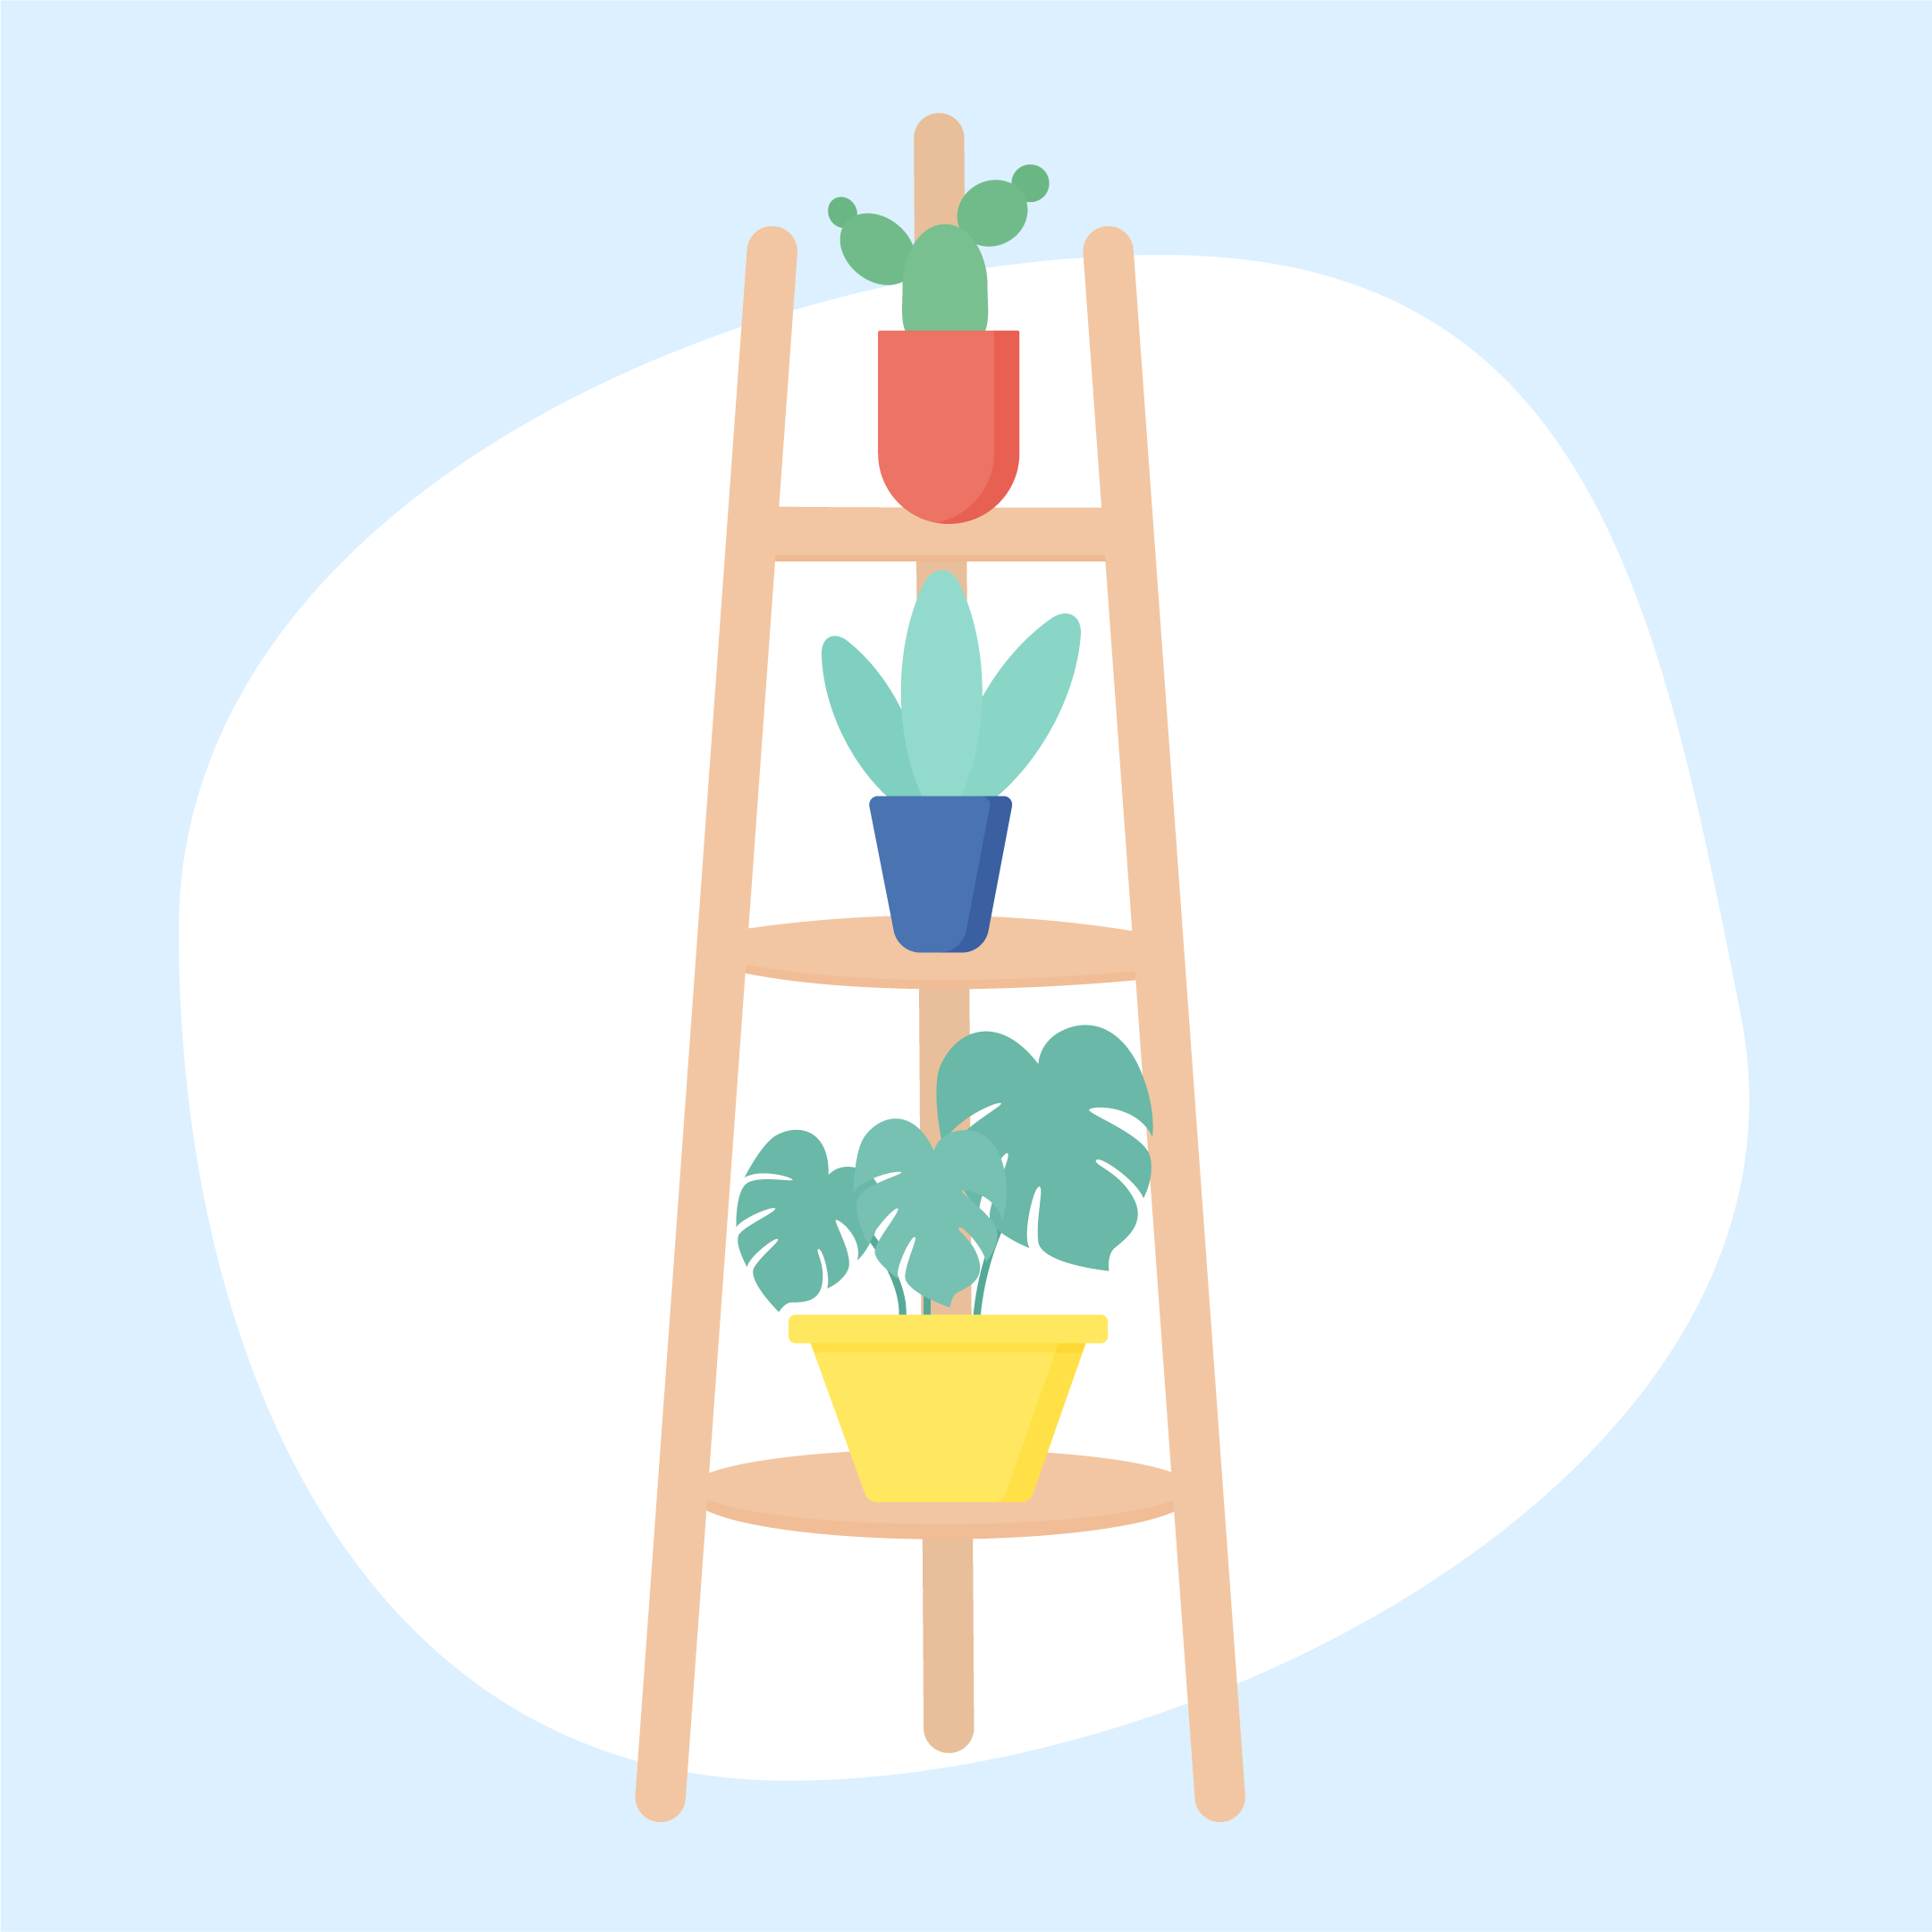 Vector illustration of a wooden ladder plant stand with three potted flowers in flat design style